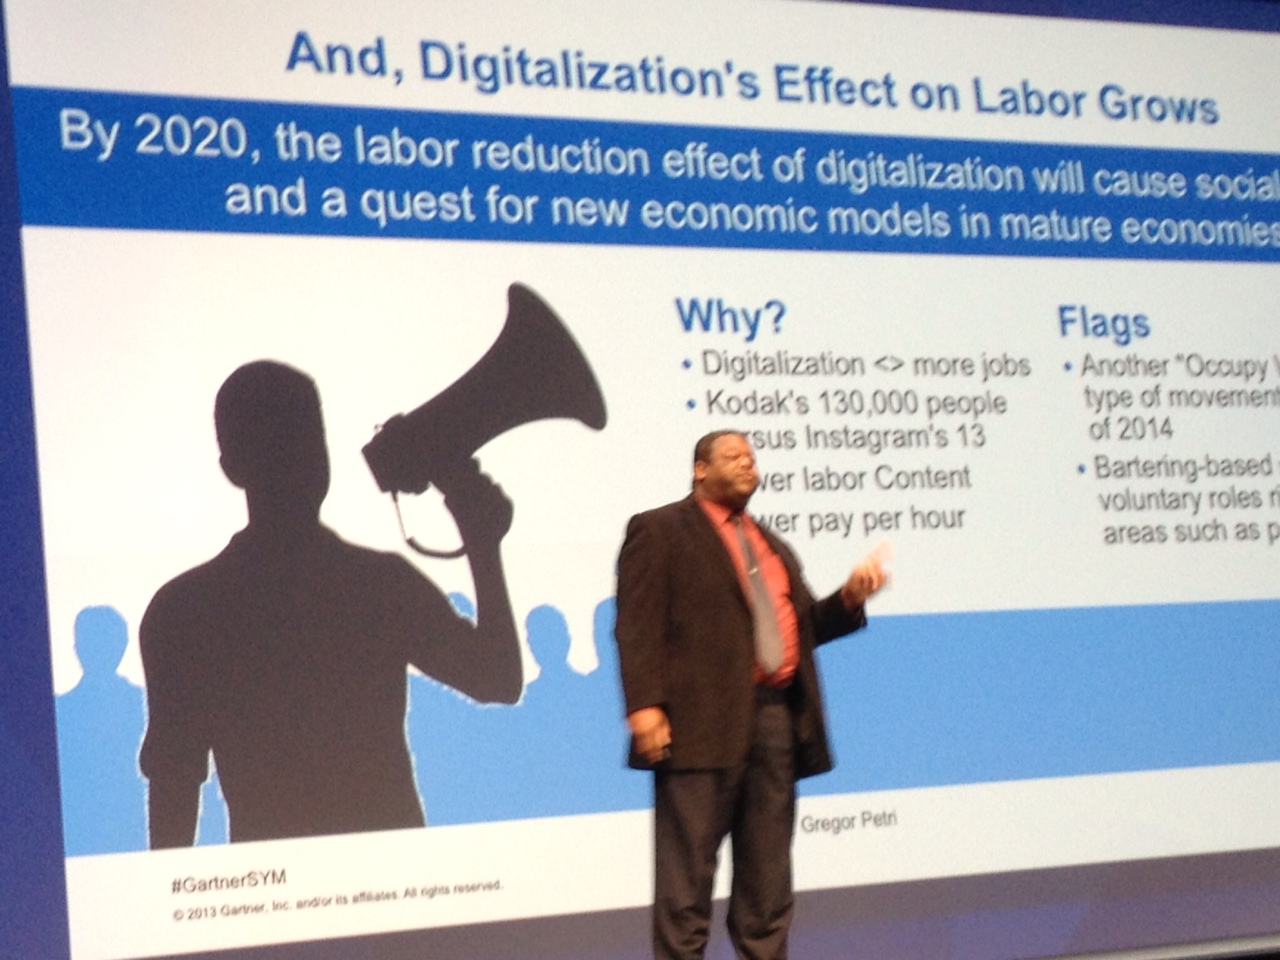 David Palmer addresses a crowd during a key note sessions at the Gartner Symposium in Orlando.